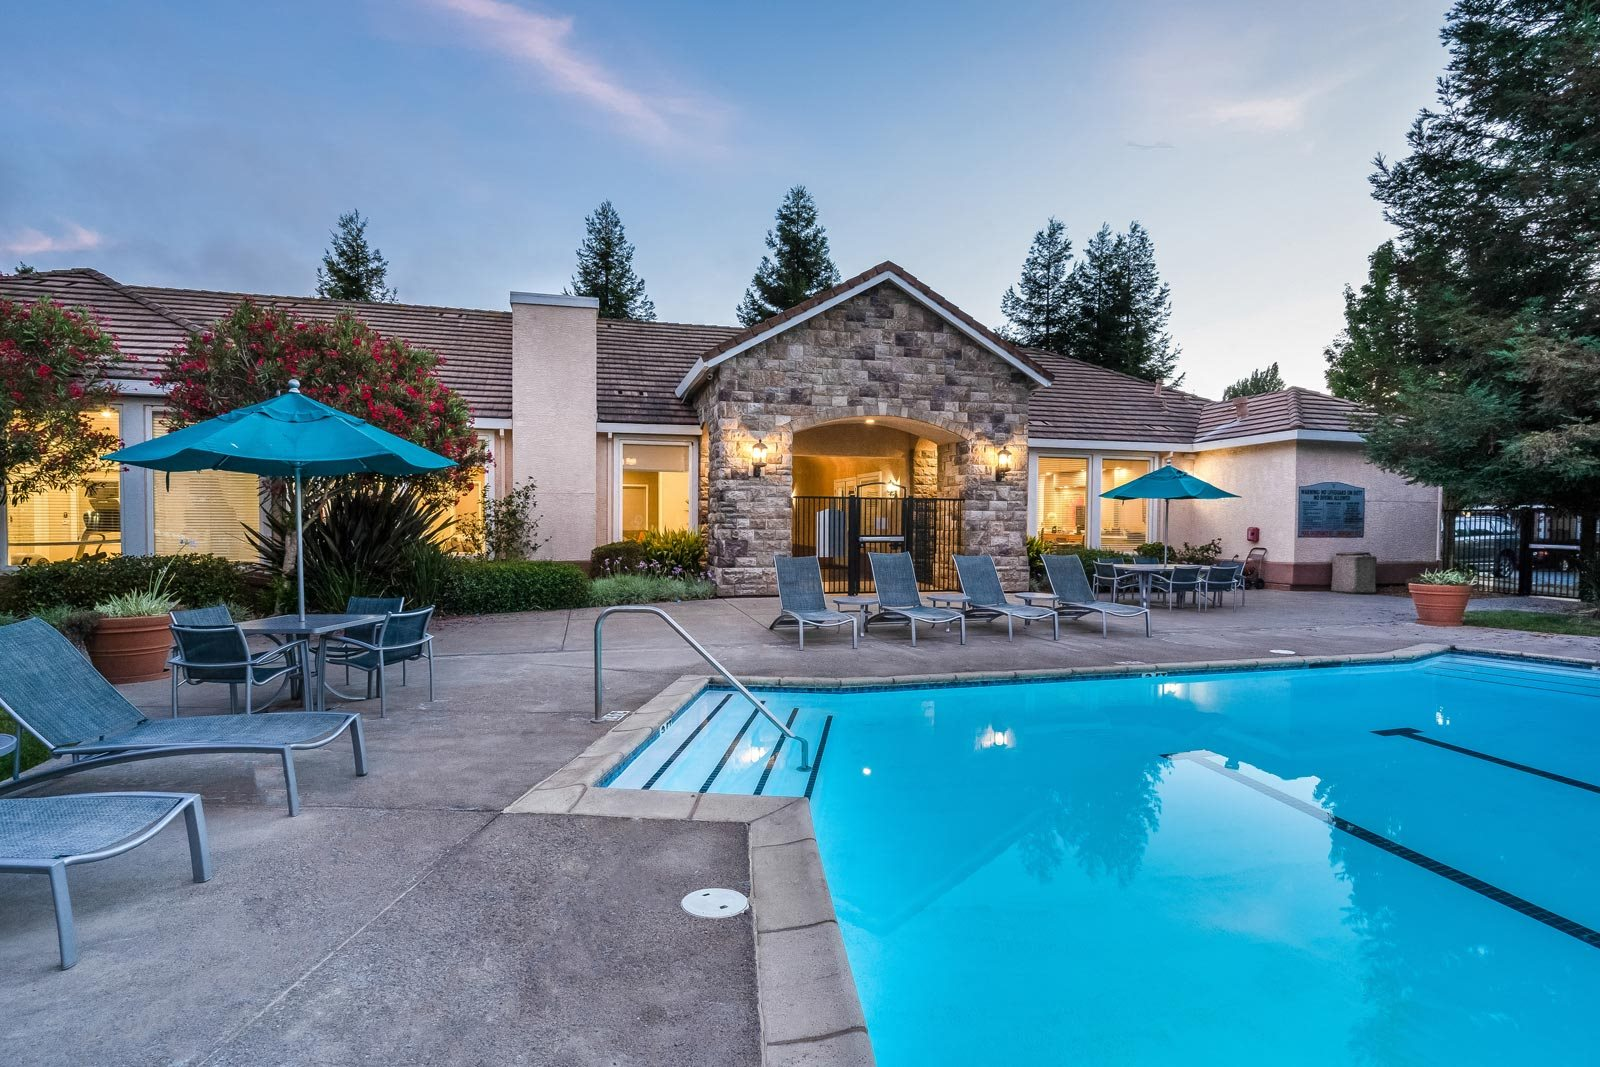 Swimming Pool with Surrounding Lounge Chairs at Windsor at Redwood Creek, Rohnert Park, CA